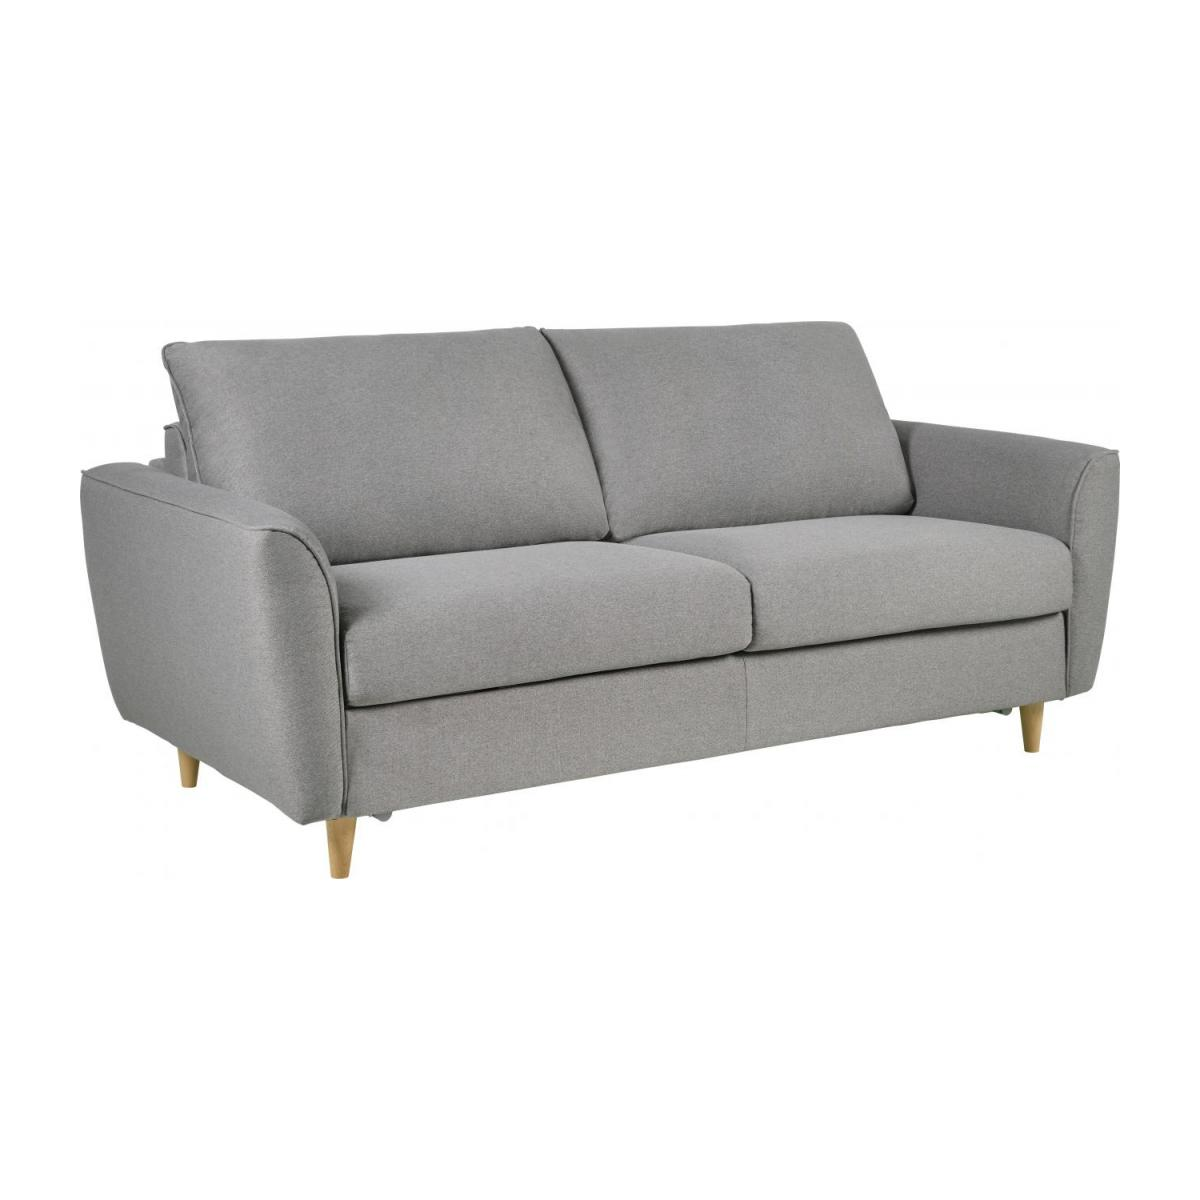 3 seater Sofa Bed with slatted base n°1